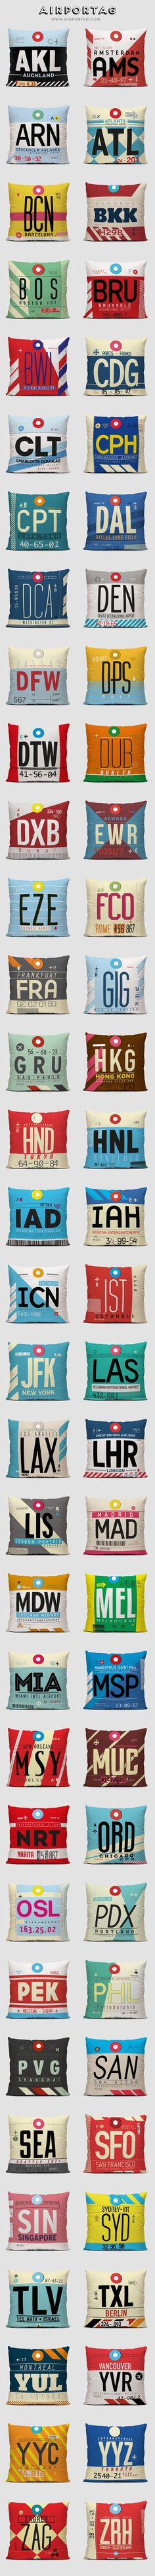 Throw pillows inspired on vintage travel luggage tags using airport IATA codes. www.airportag.com